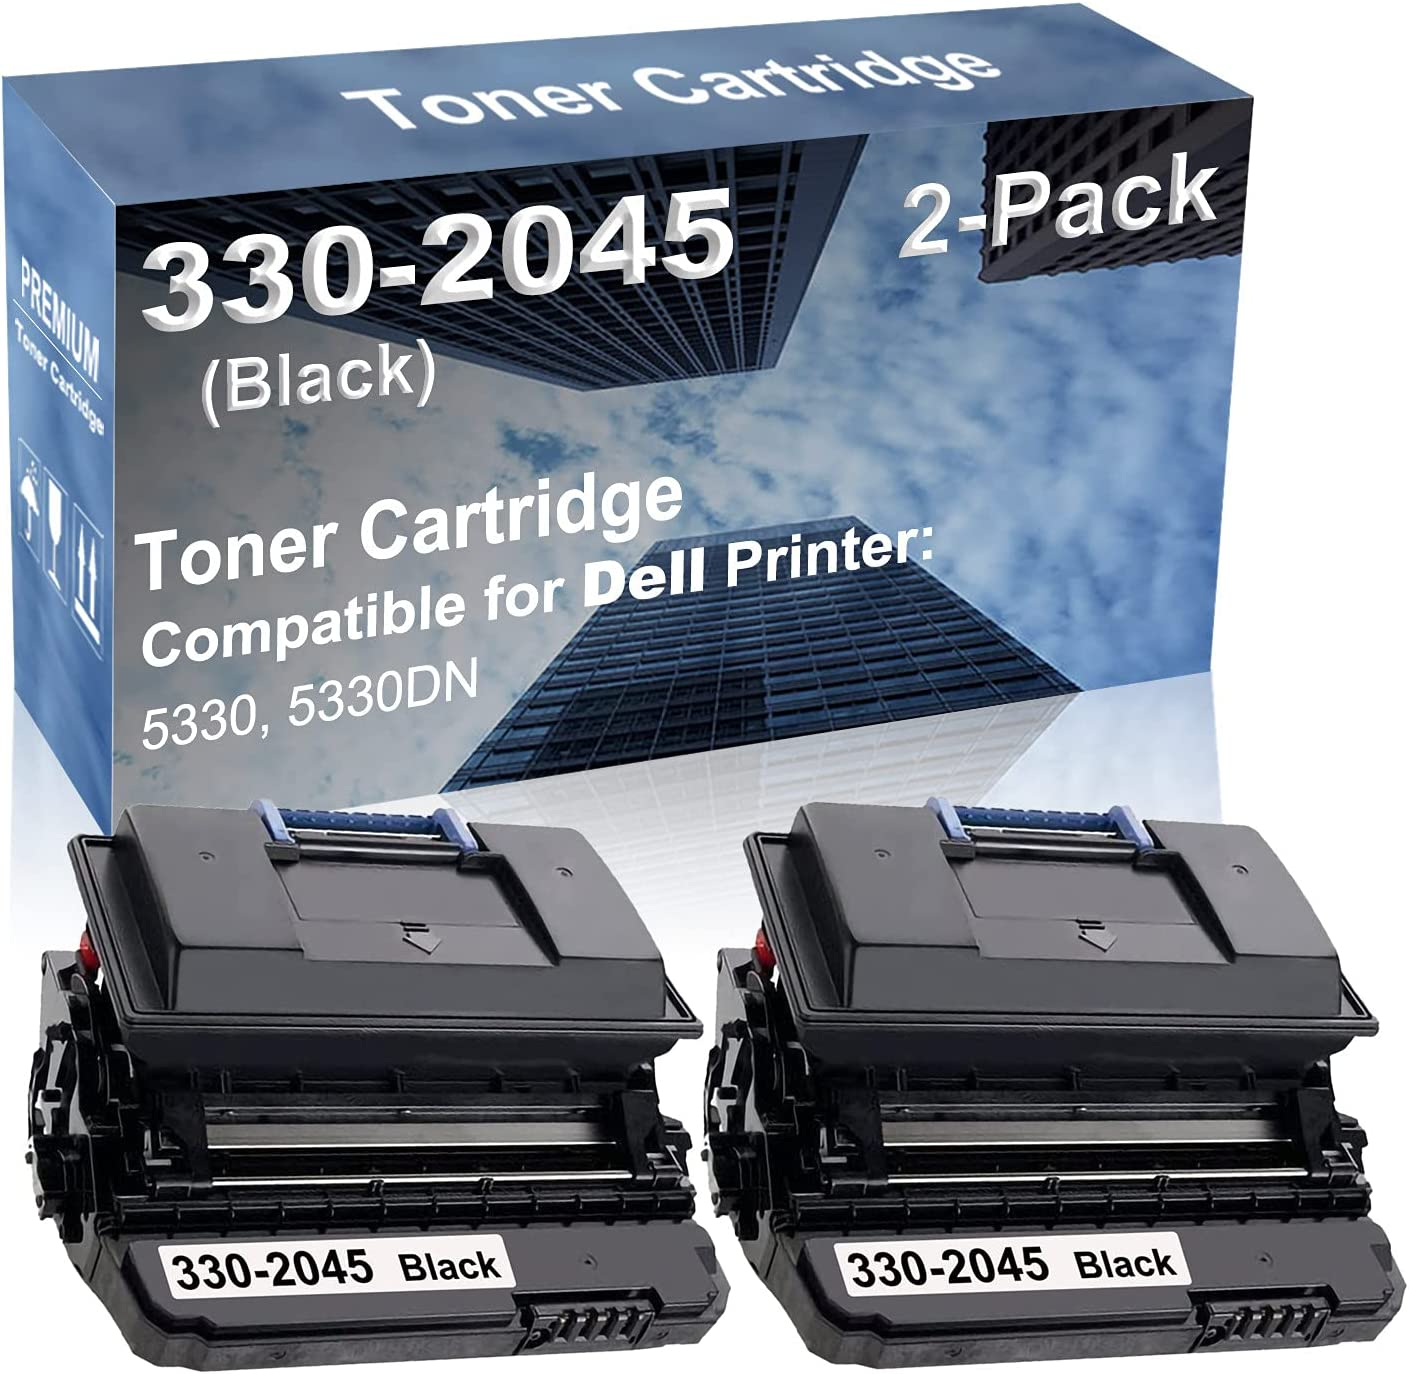 2-Pack Compatible High Capacity 5330, 5330DN Printer Toner Cartridge Replacement for Dell 330-2045 Printer Cartridge (Black)